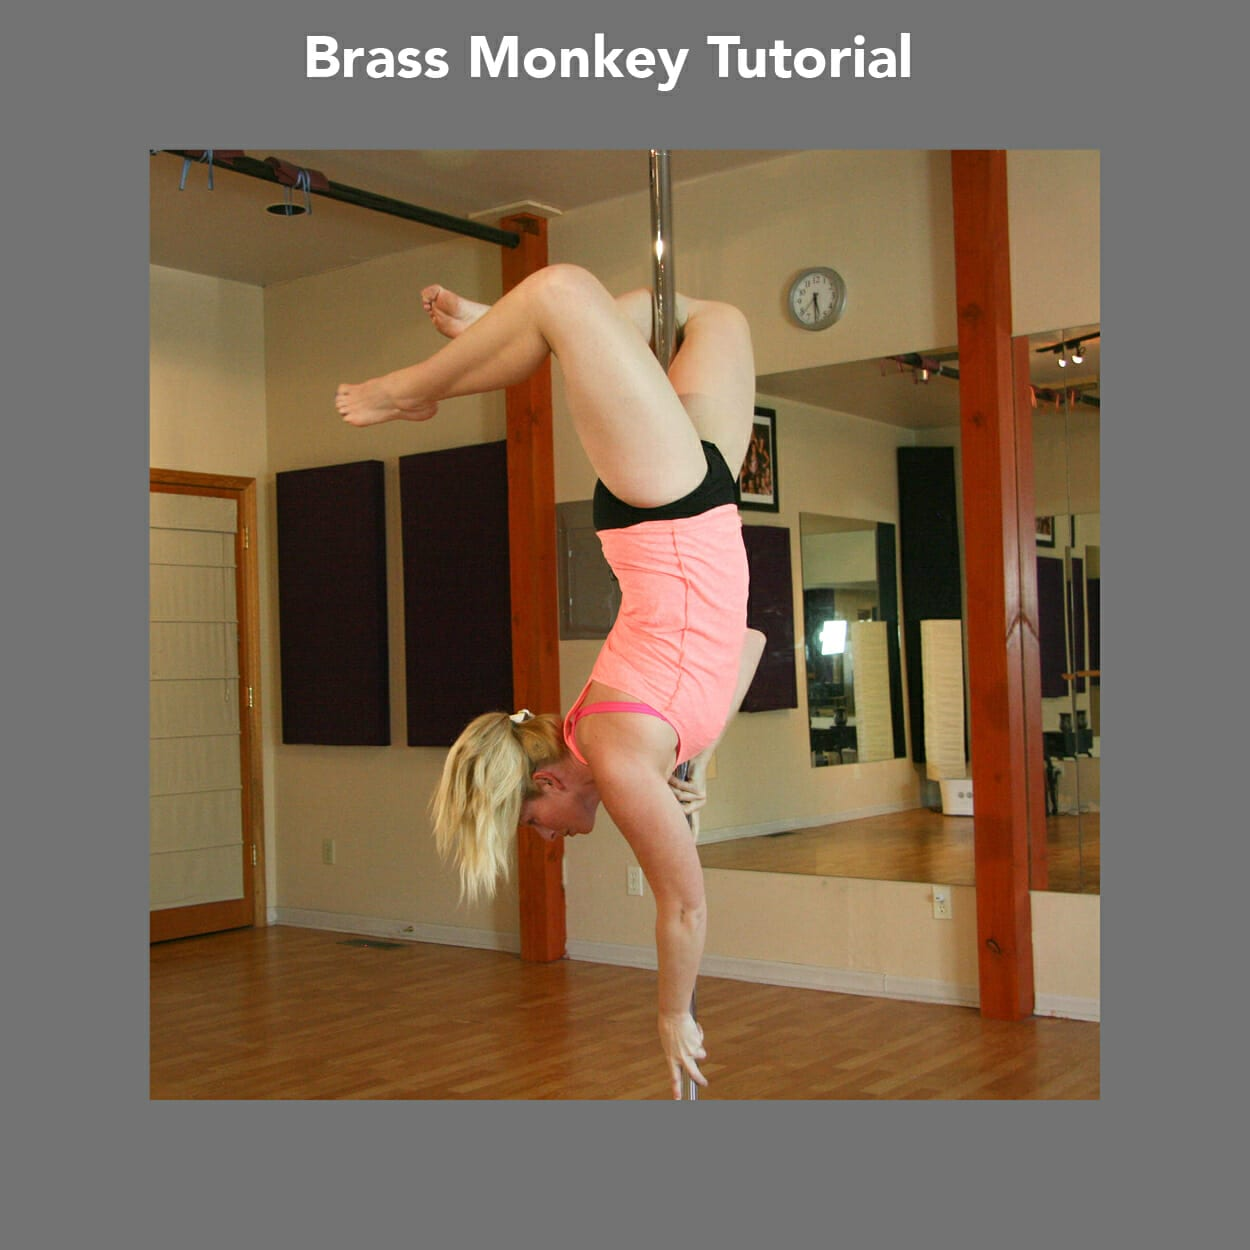 Tutorial: Brass Monkey